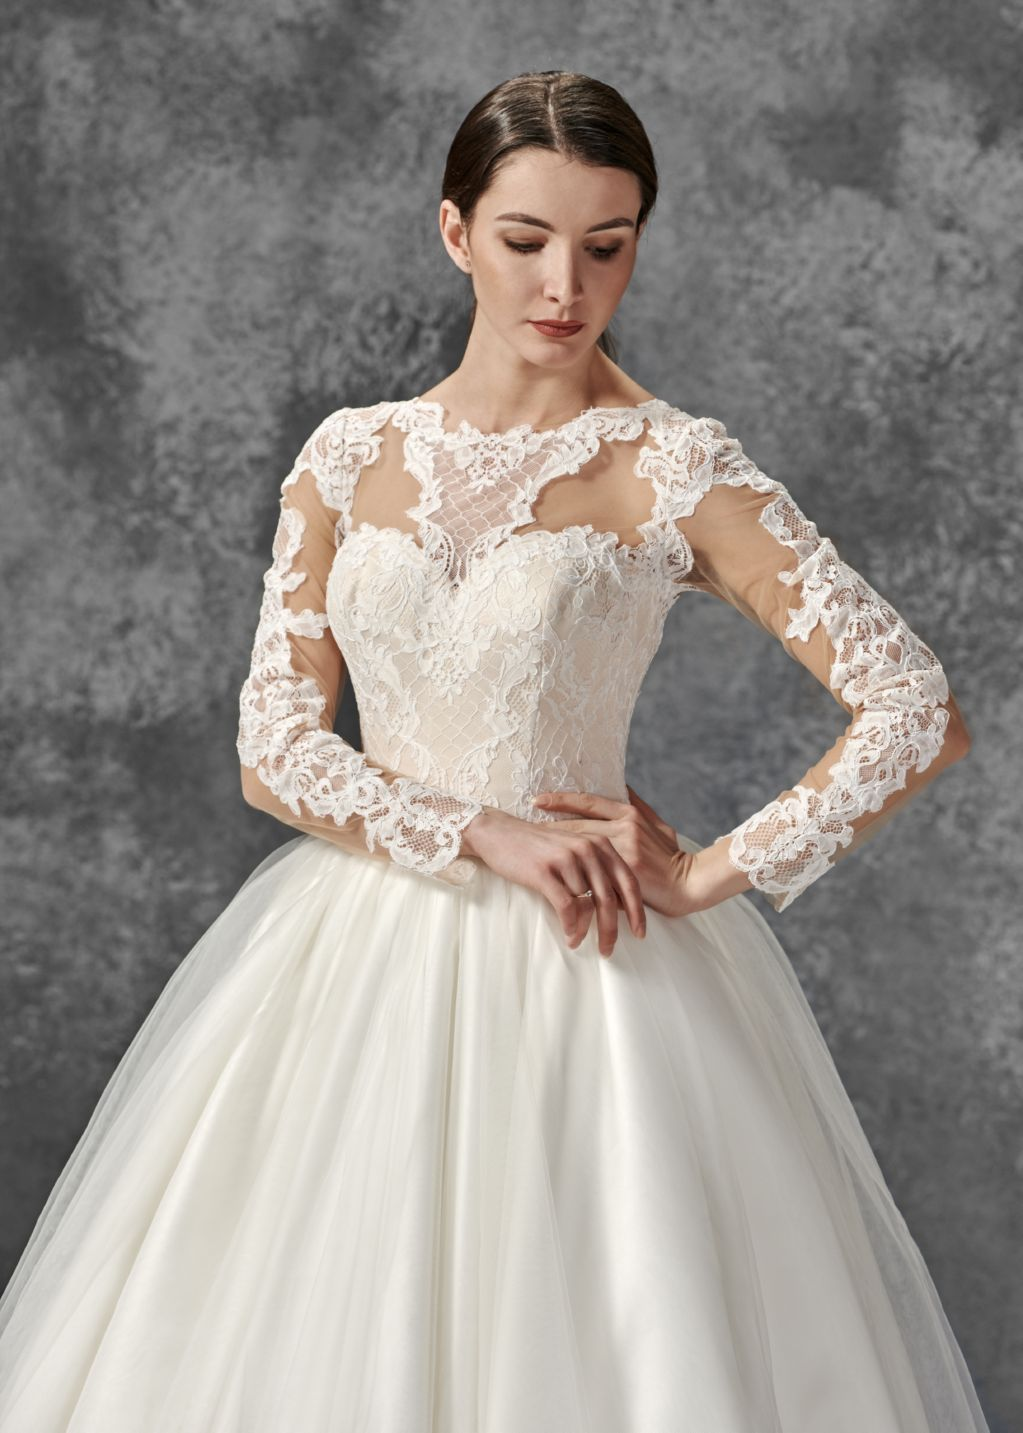 Country dresses for weddings  Country Wedding dress Boho wedding dress Unique wedding dress With